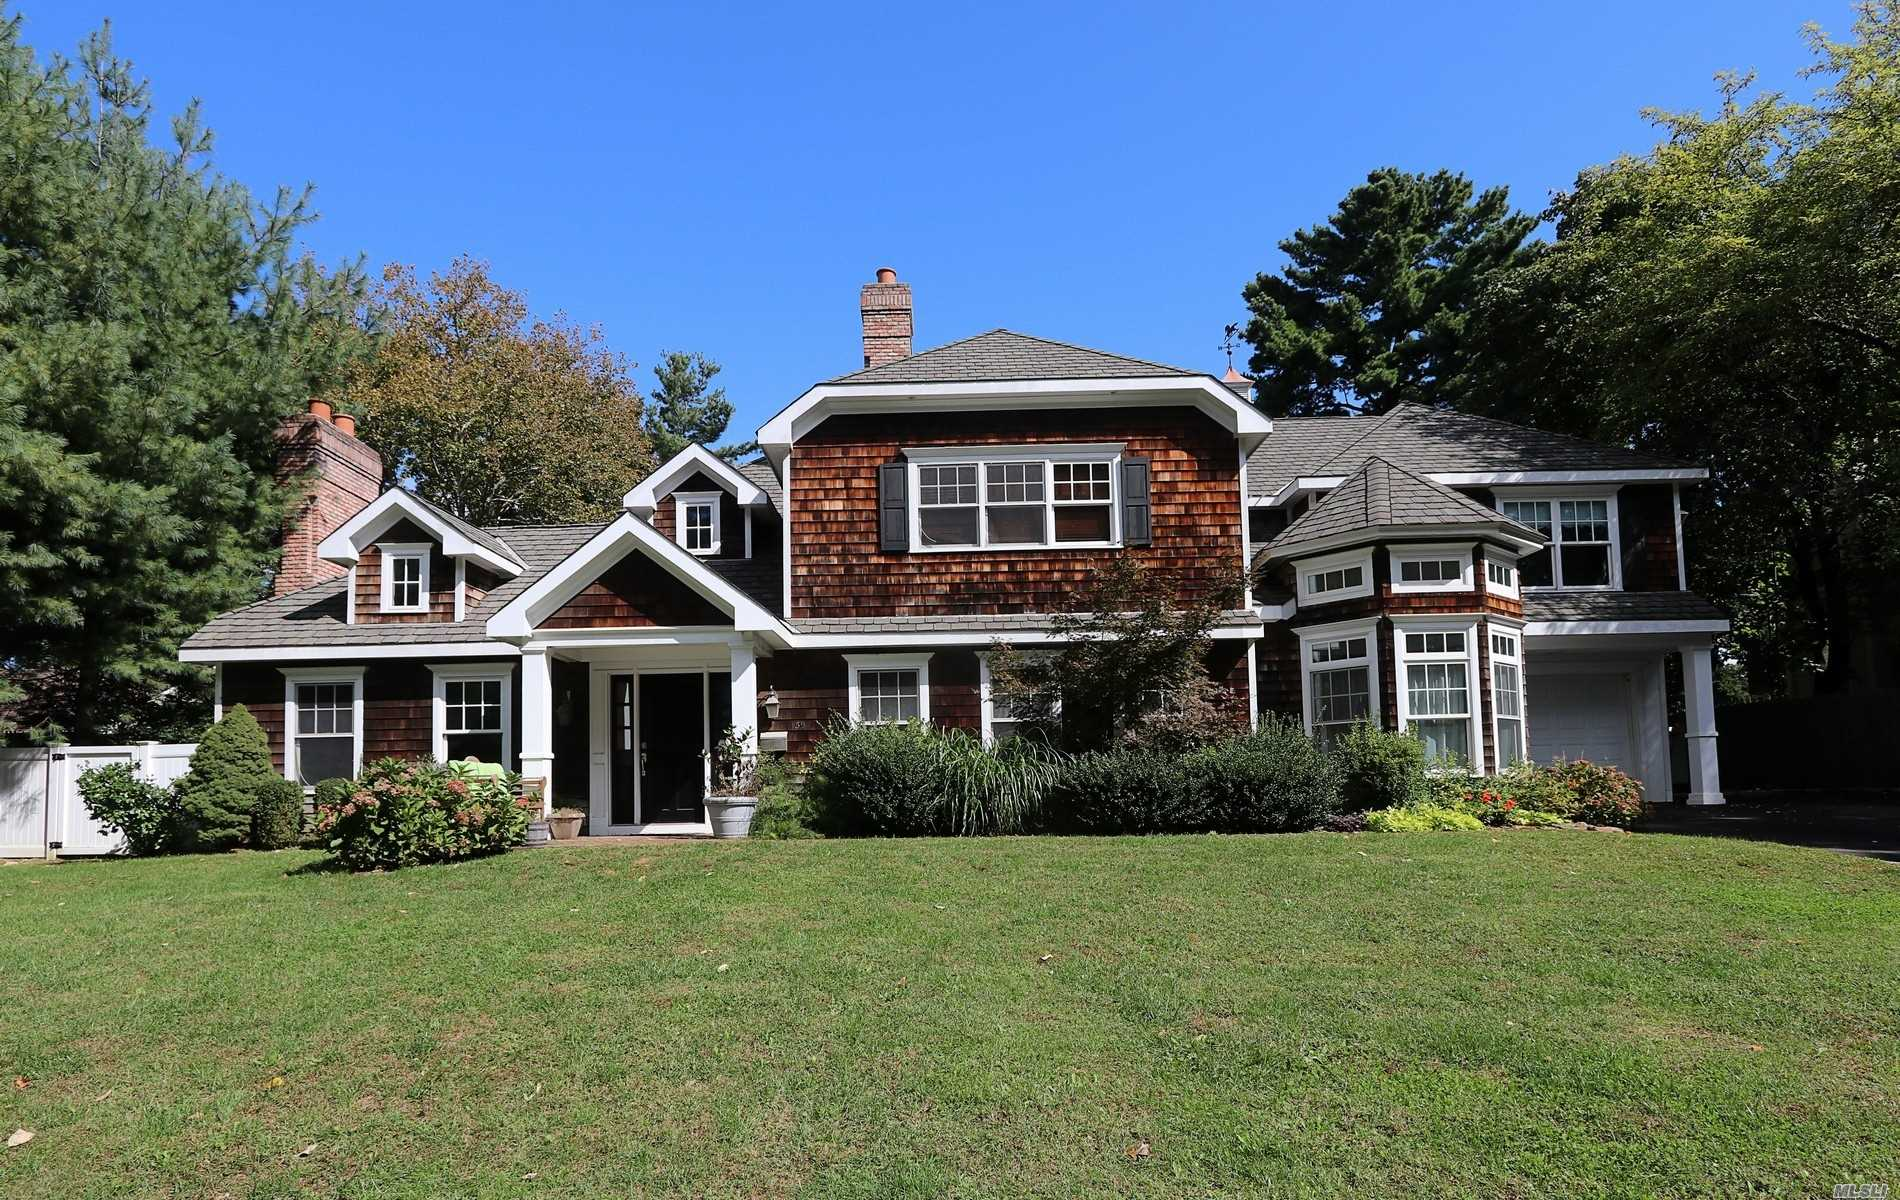 Photo of home for sale at 159 Shepherd Ln, Roslyn Heights NY